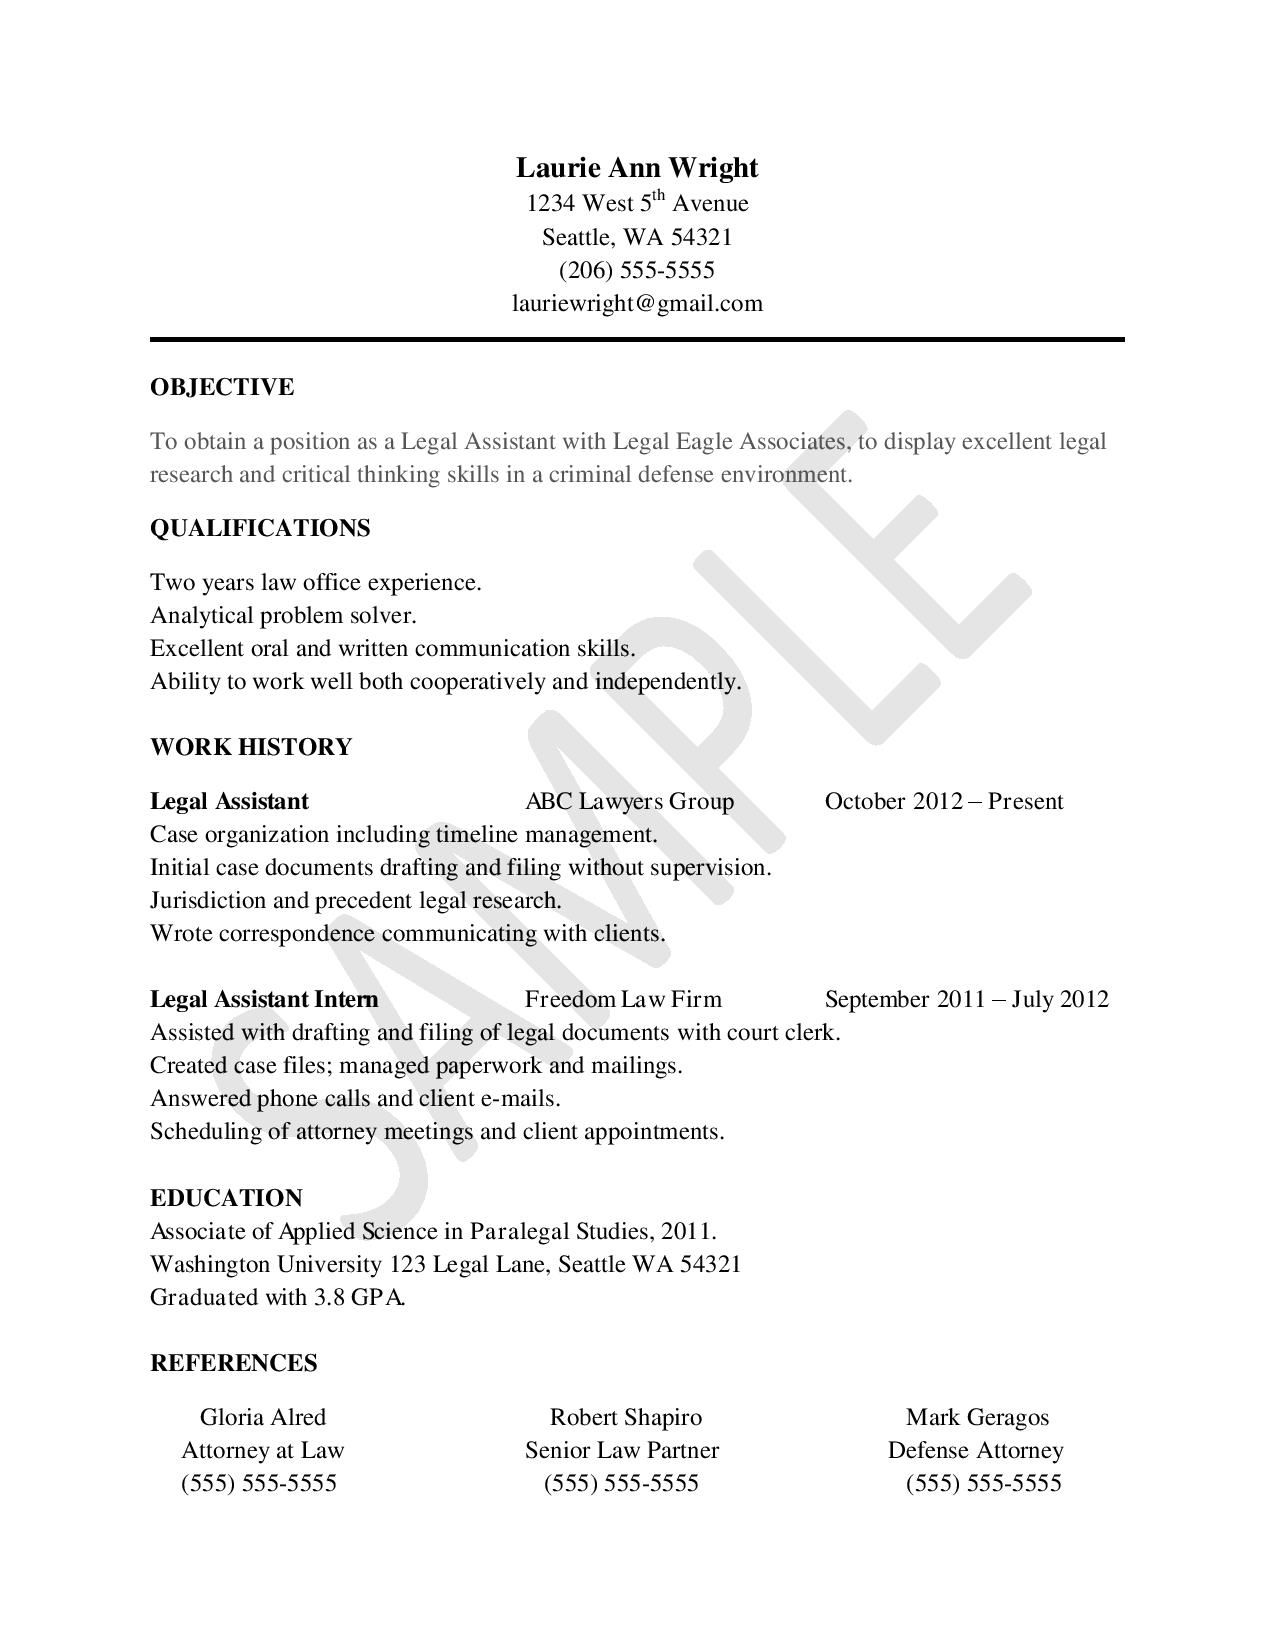 Sample Law School Resume Sample Resume For Legal Assistants  Legalassistant